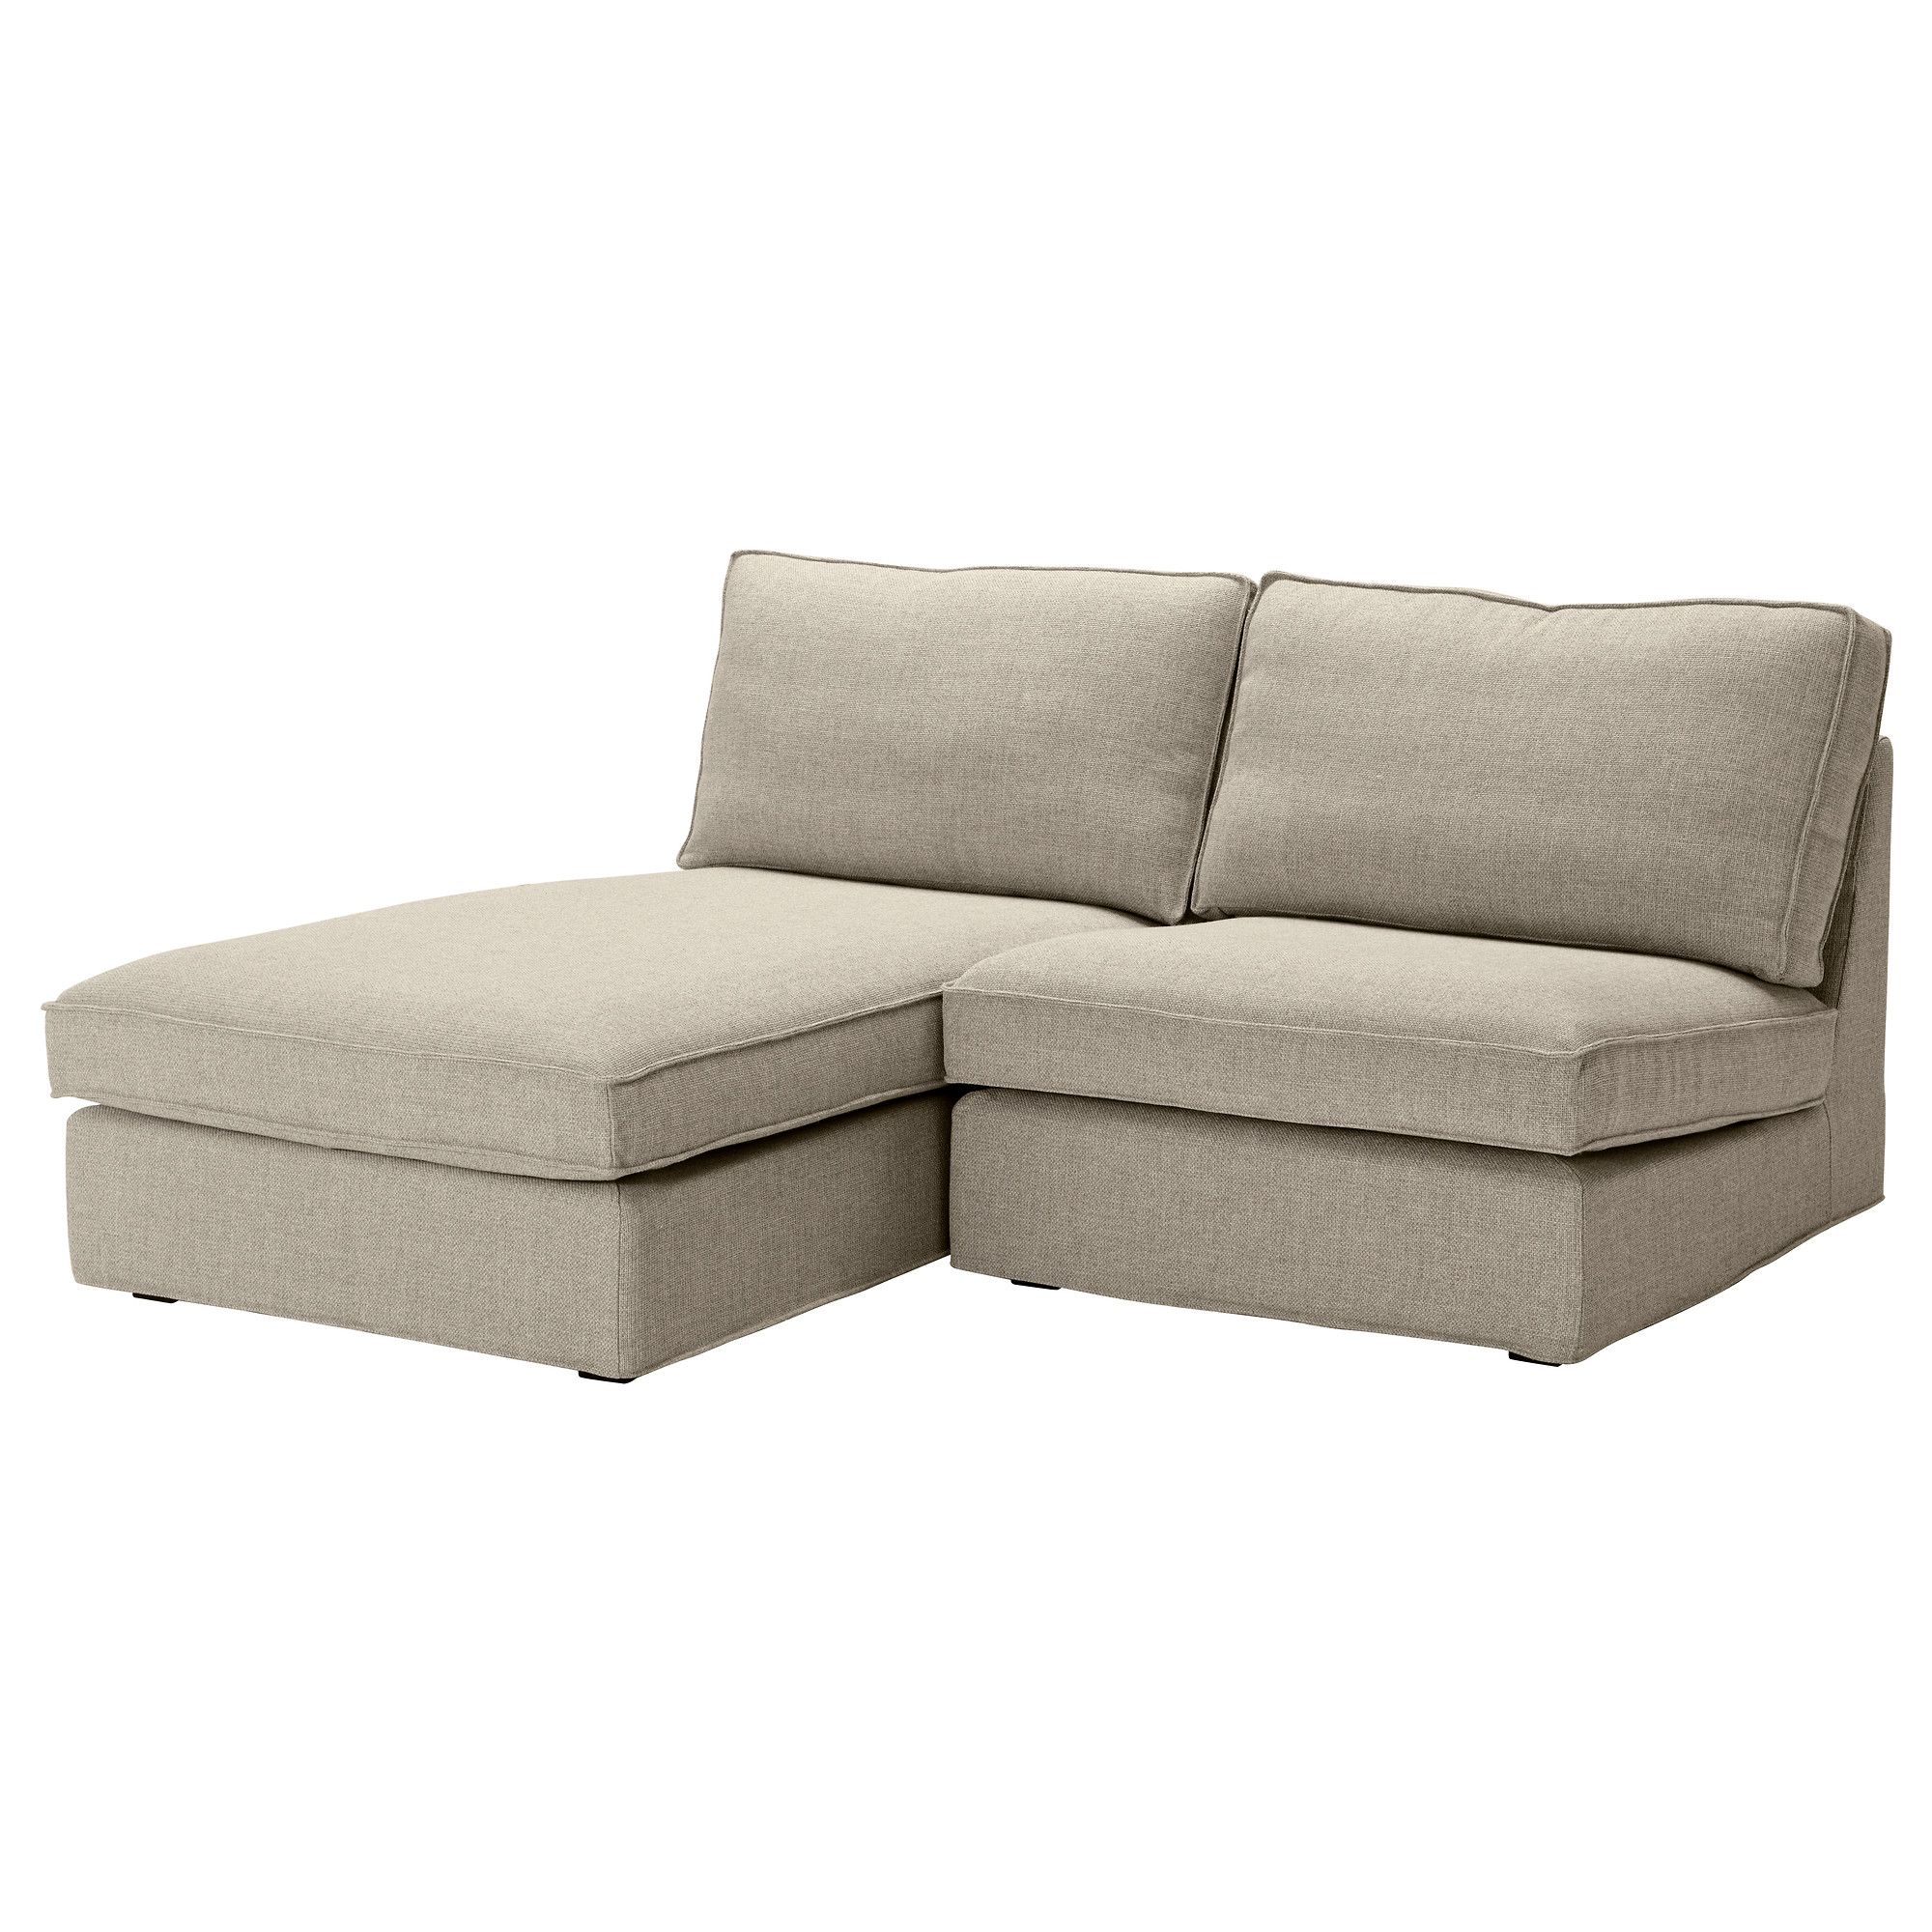 KIVIK One-seat Section With Chaise